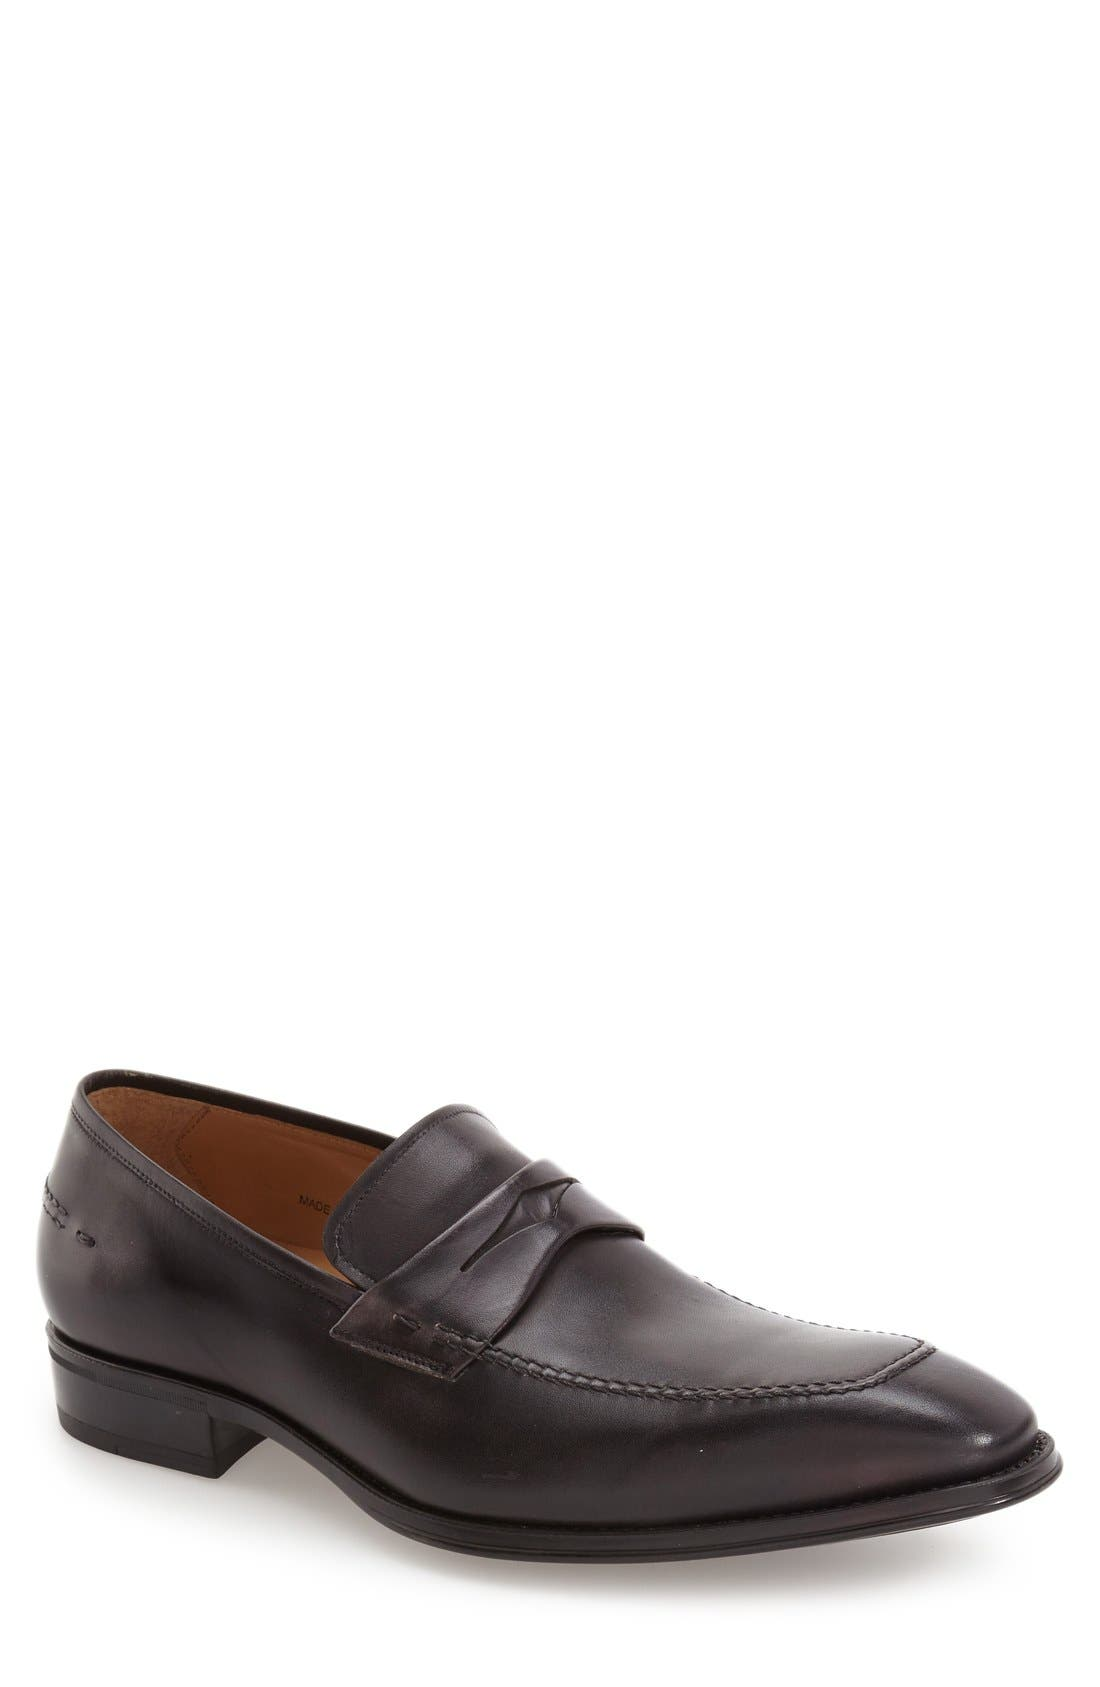 'Trento' Penny Loafer,                             Main thumbnail 1, color,                             Black